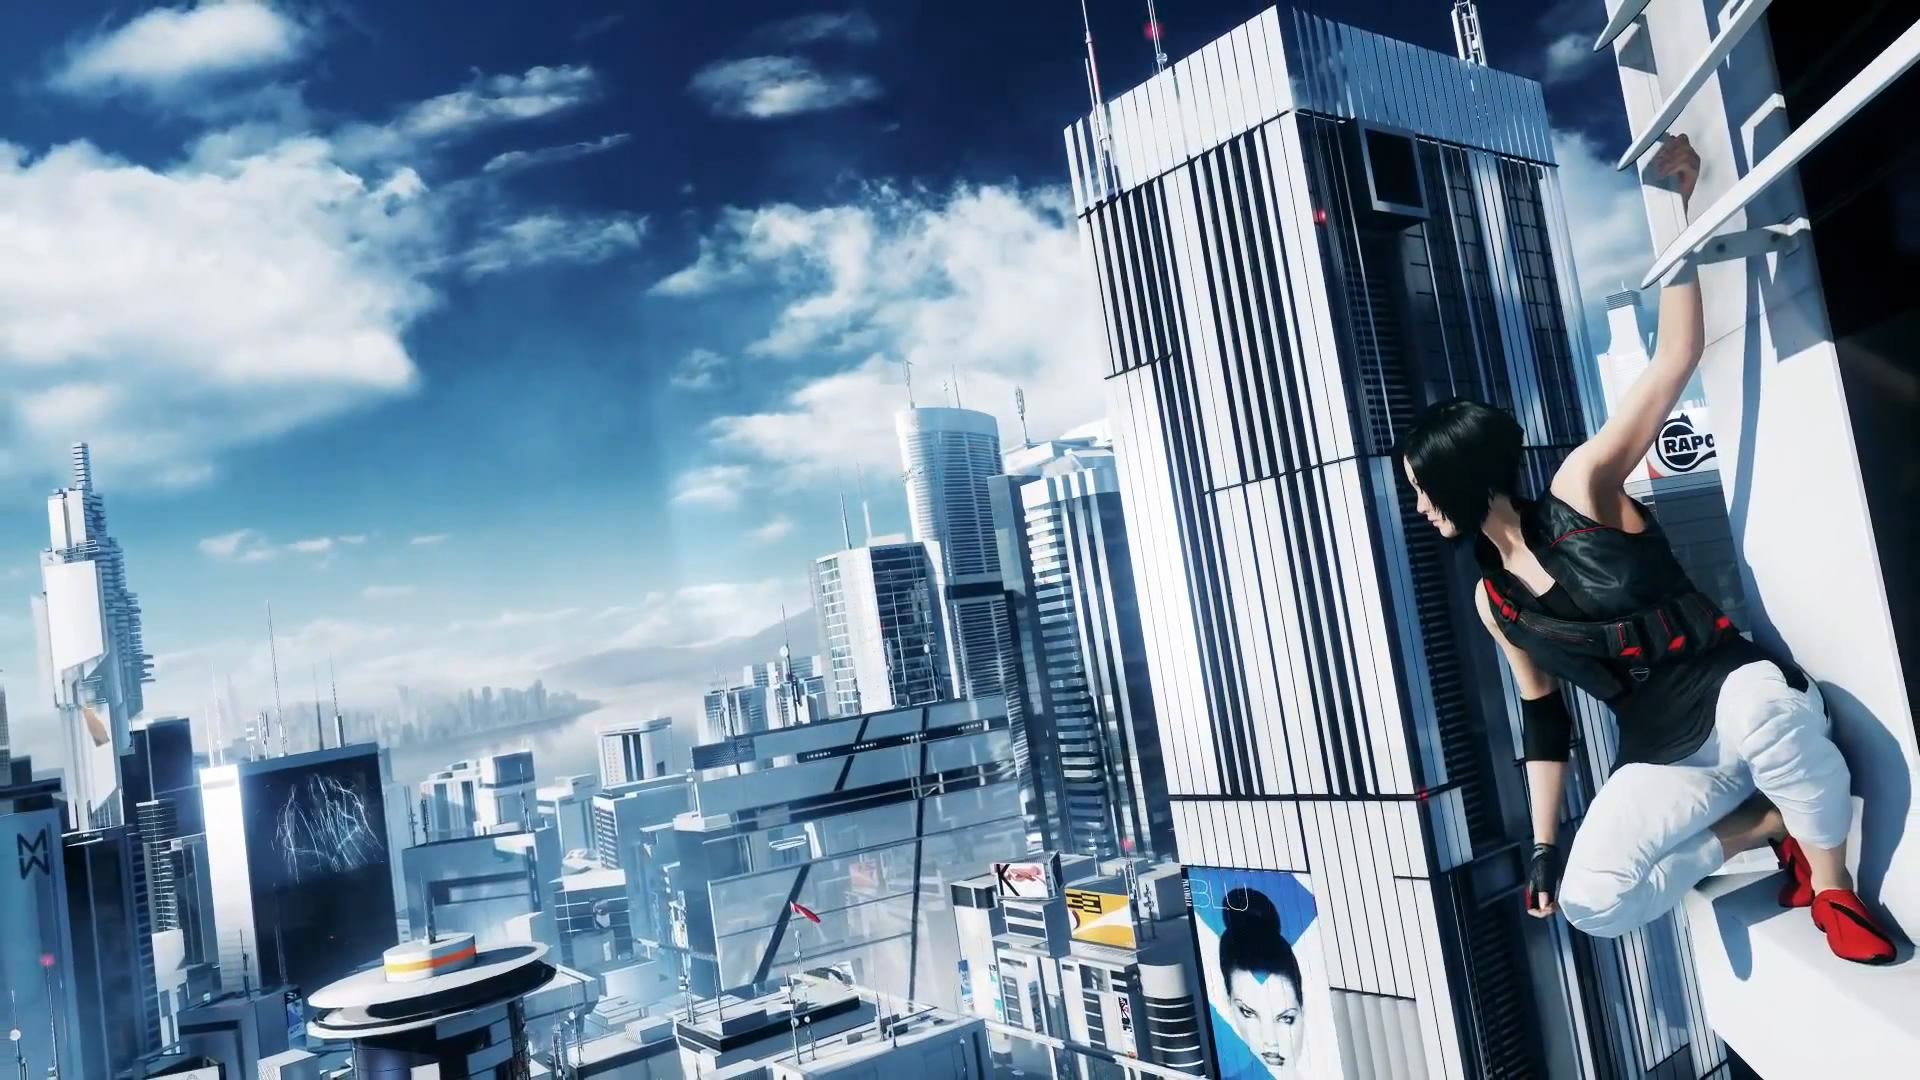 Mirrors Edge 2 wallpaper 4